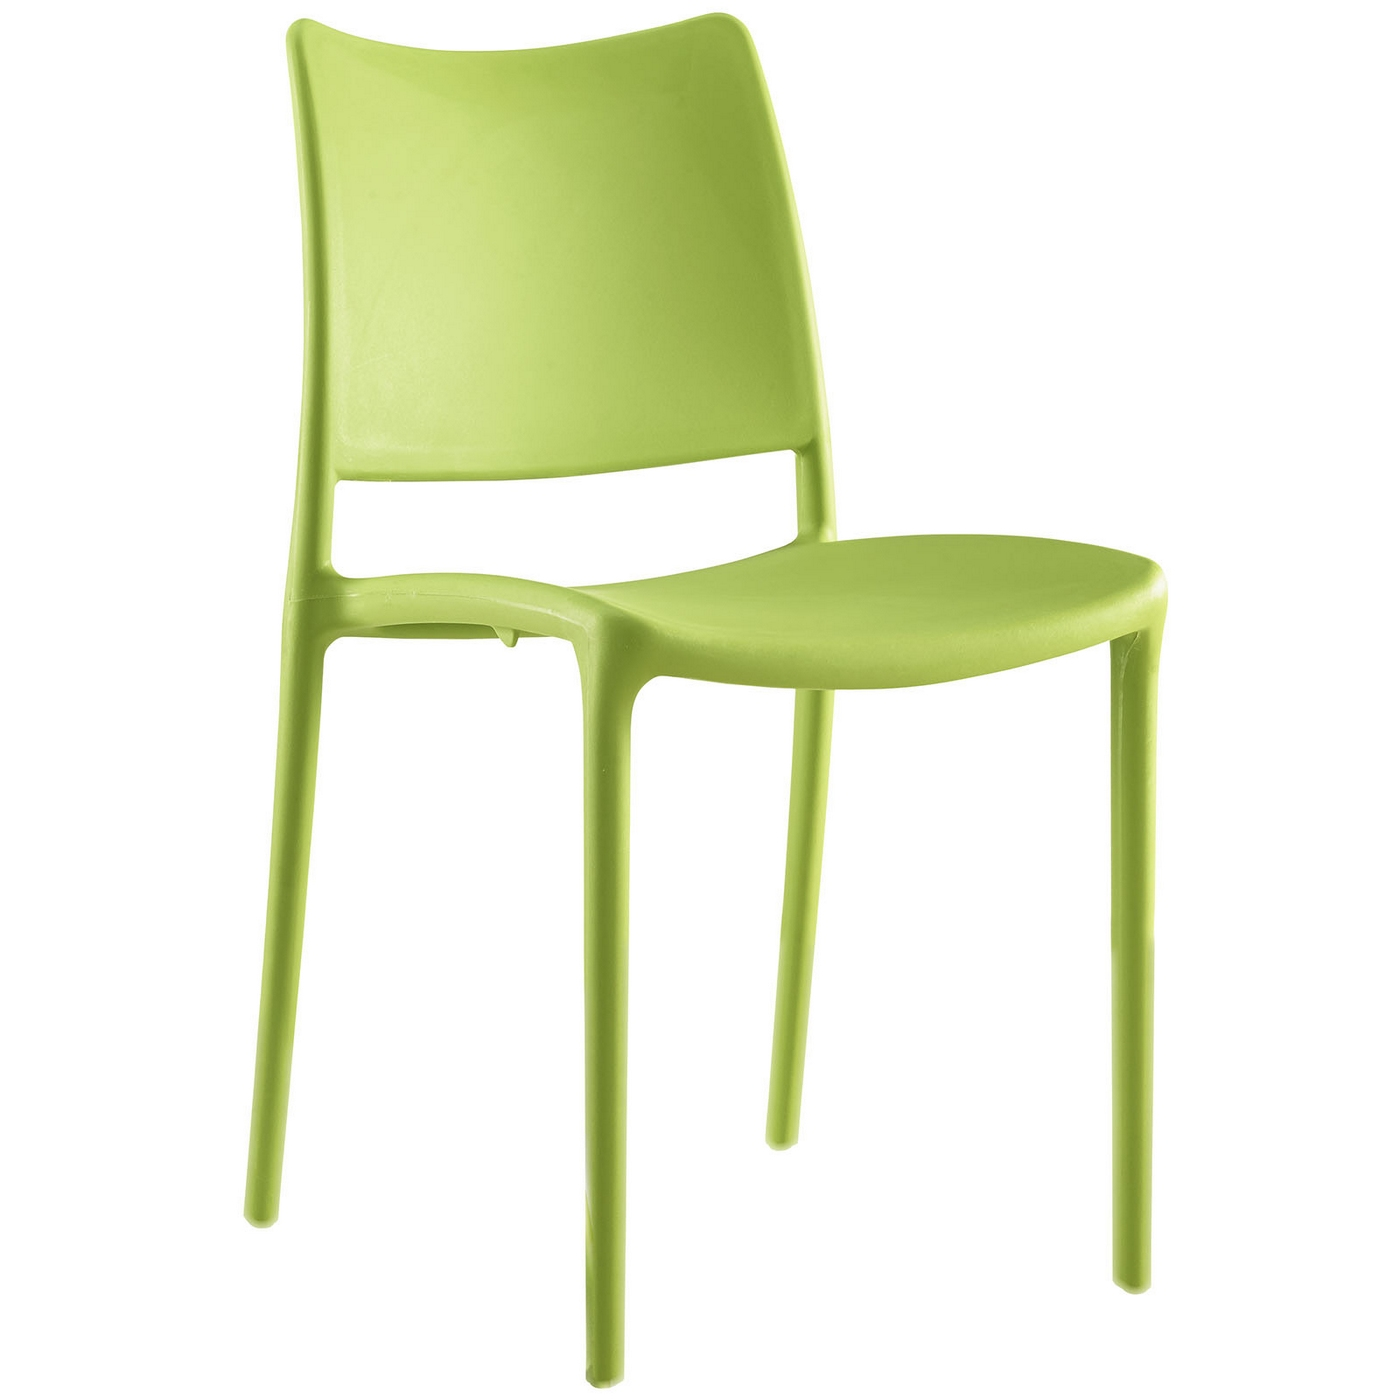 hipster contemporary stackable plastic dining side chair green. Black Bedroom Furniture Sets. Home Design Ideas